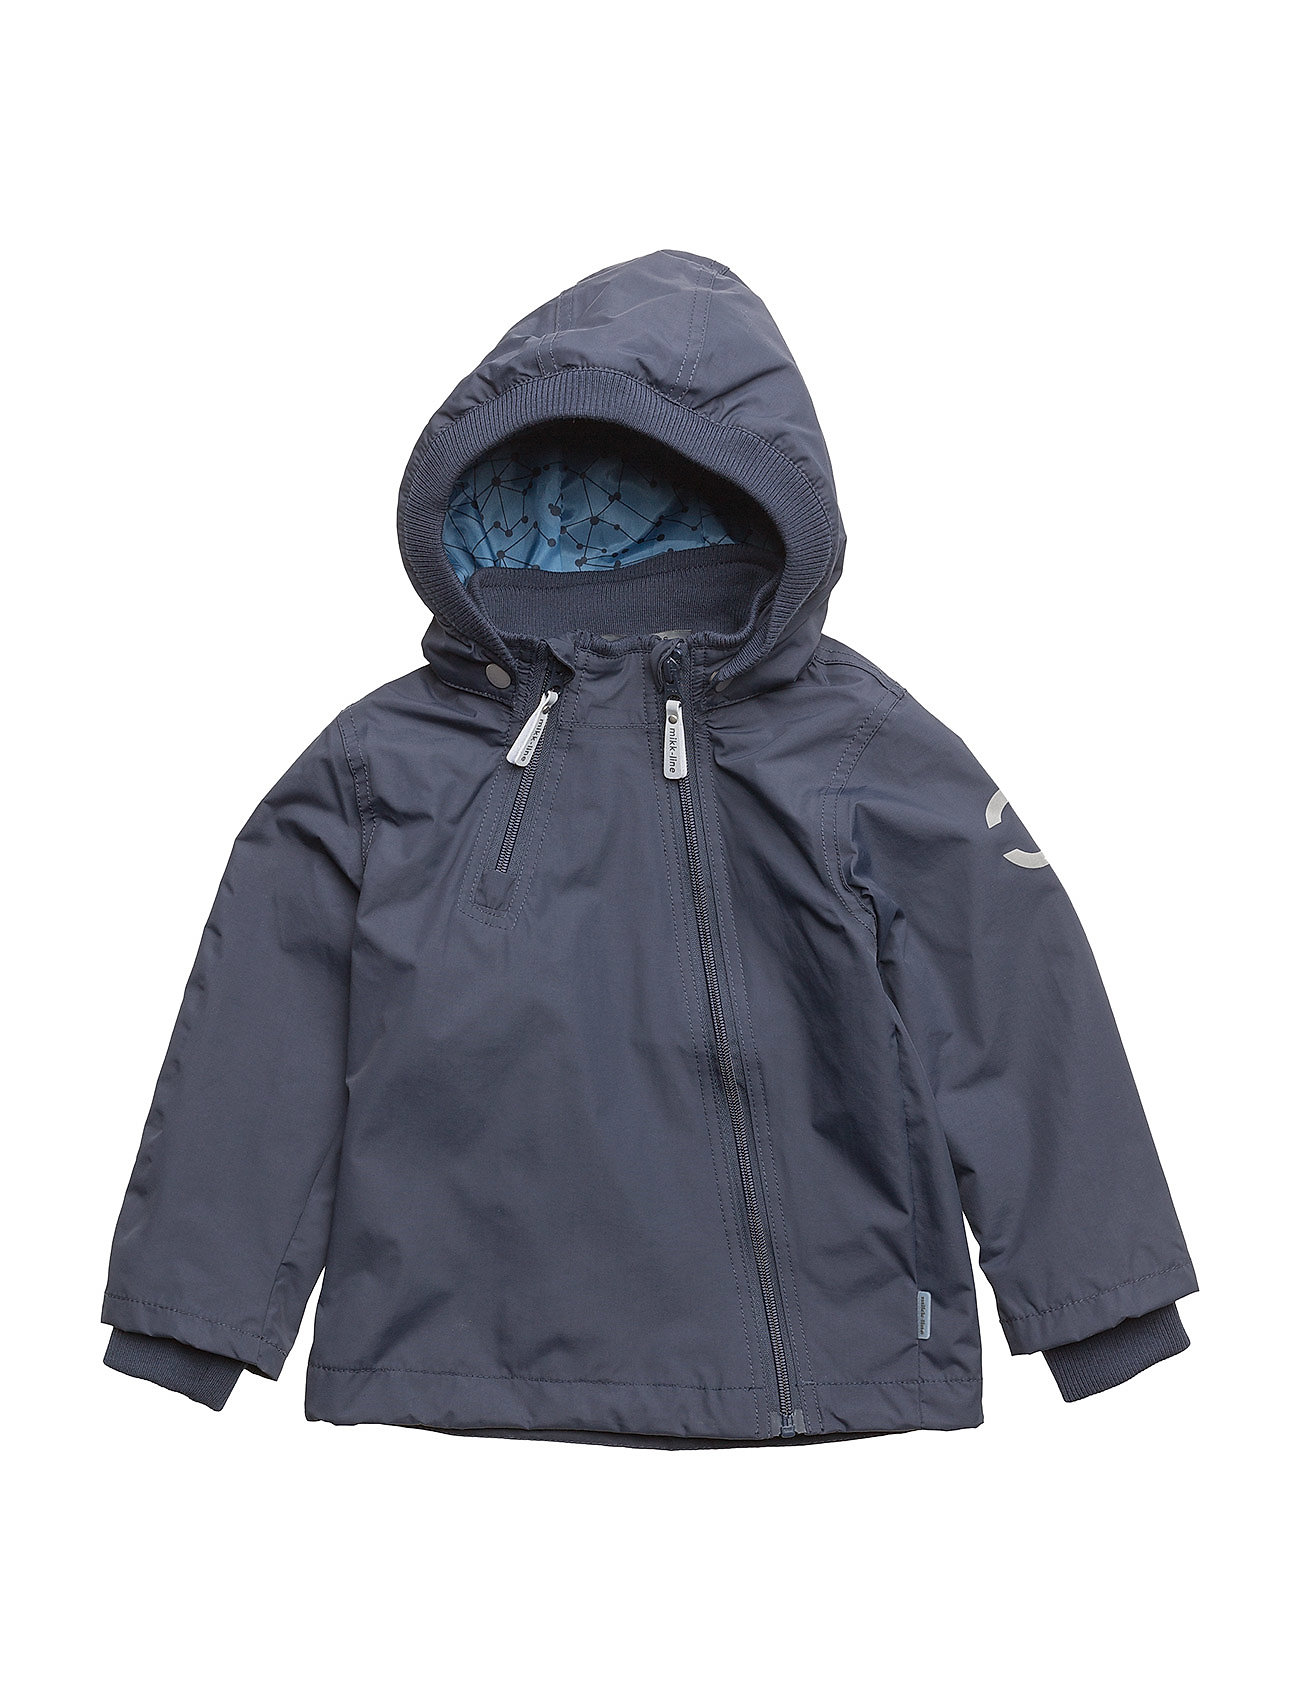 Mikk-Line Nylon Baby Jacket - 287 BLUE NIGHTS